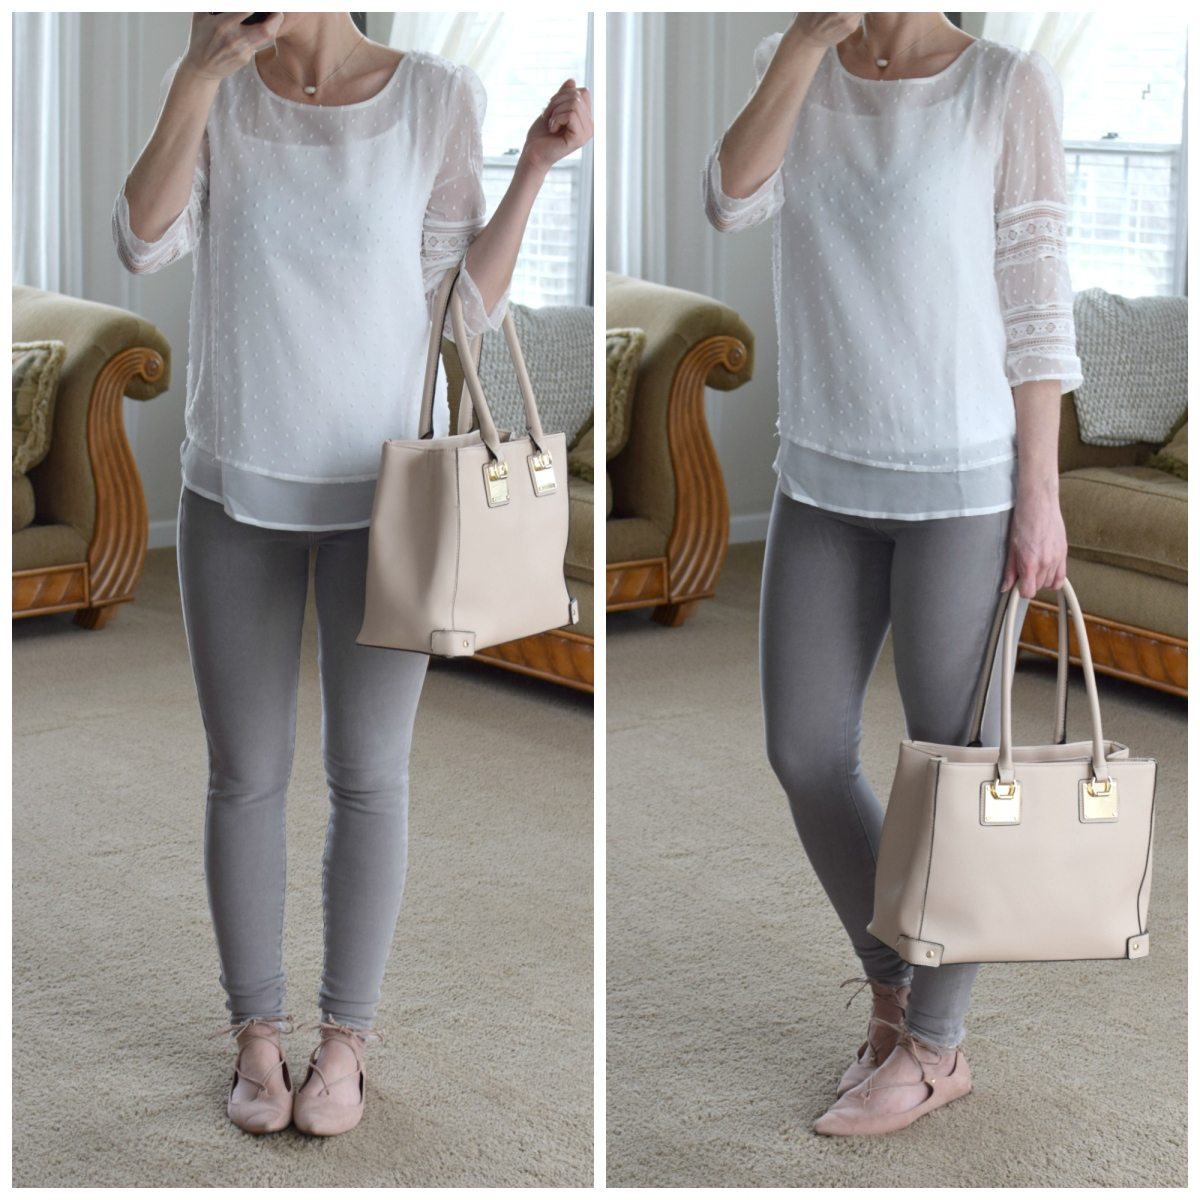 grey and blush outfit for spring |www.pearlsandsportsbras.com|